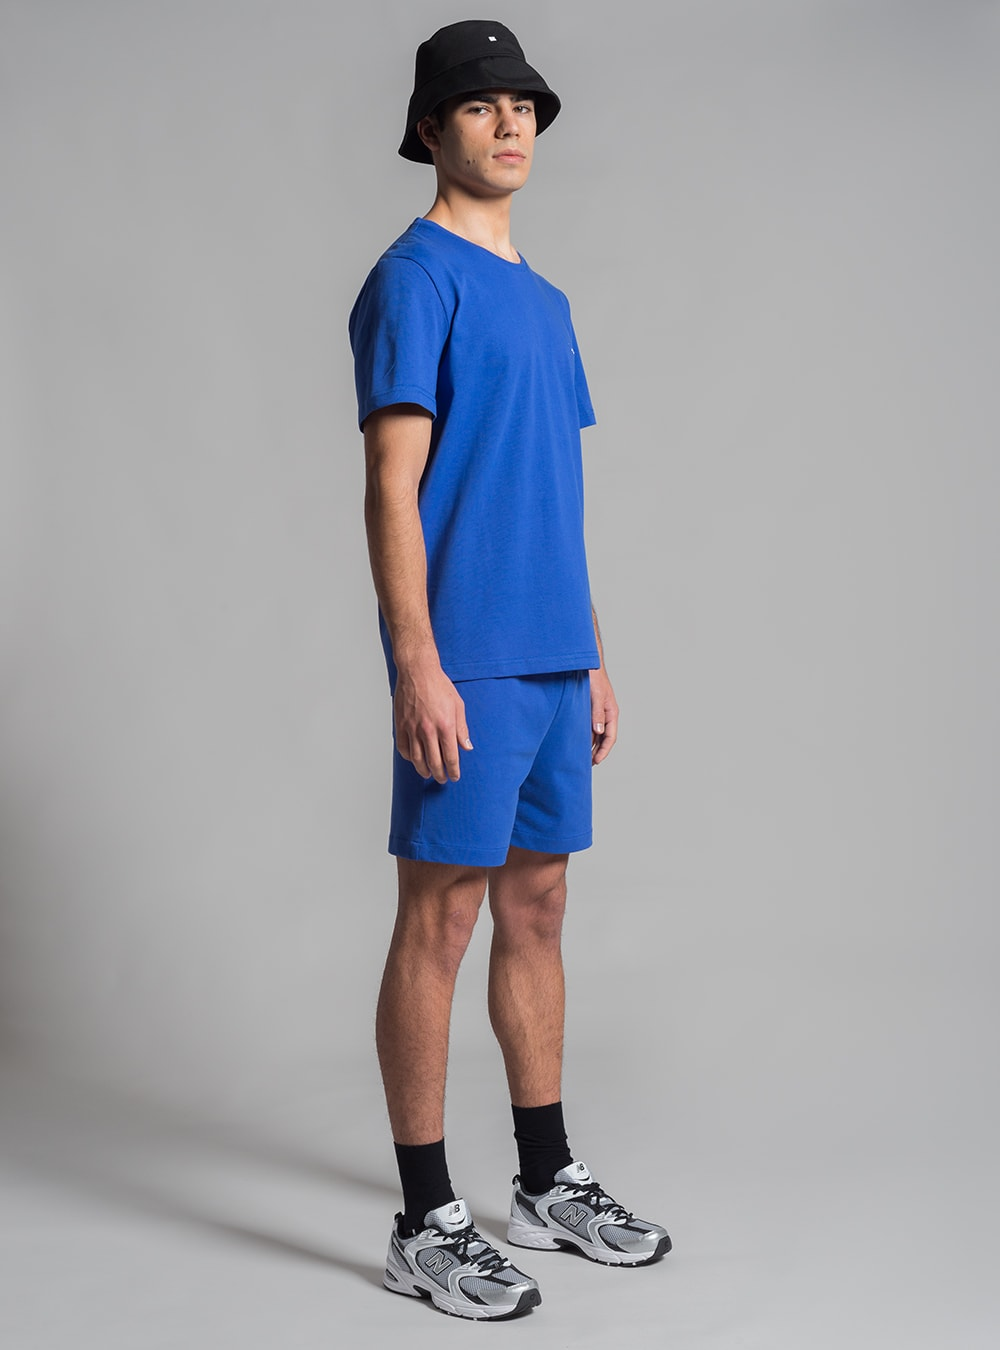 Relaxed jersey t-shirt and shorts set (blue) made in Portugal by wetheknot